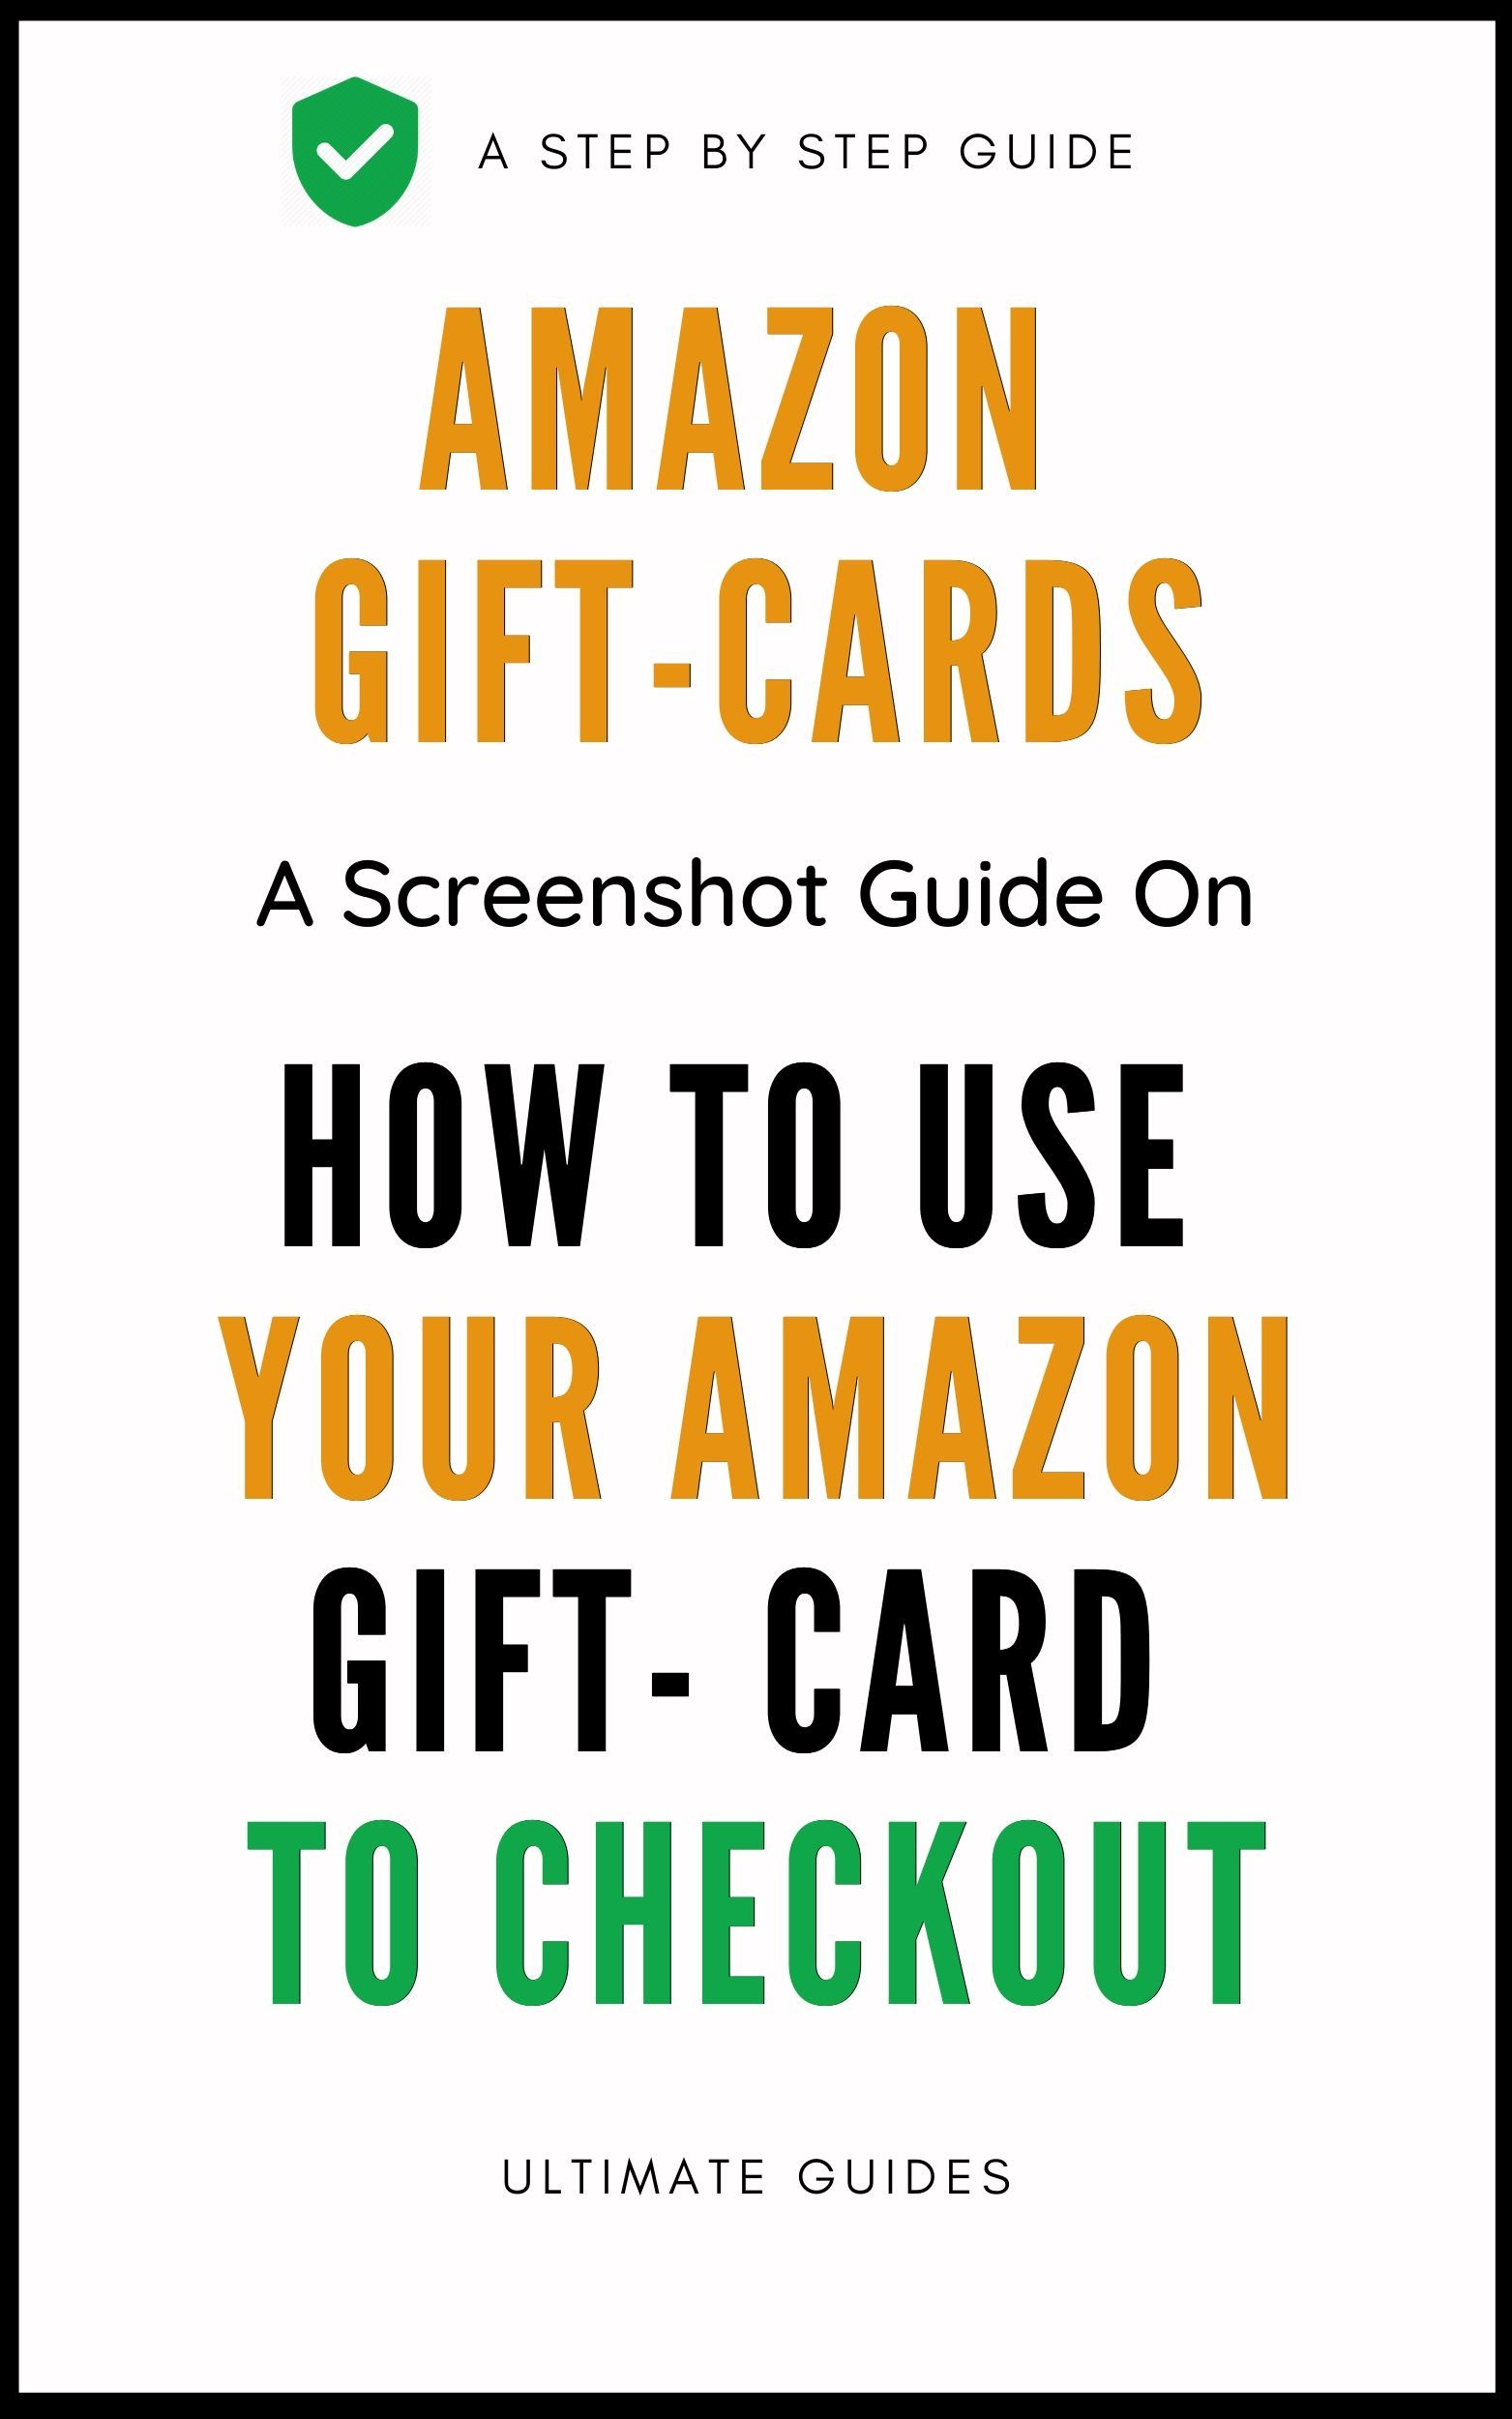 How To Use Gift Cards For Amazon To Checkout Gift Card Amazon Gift Cards Amazon Gifts